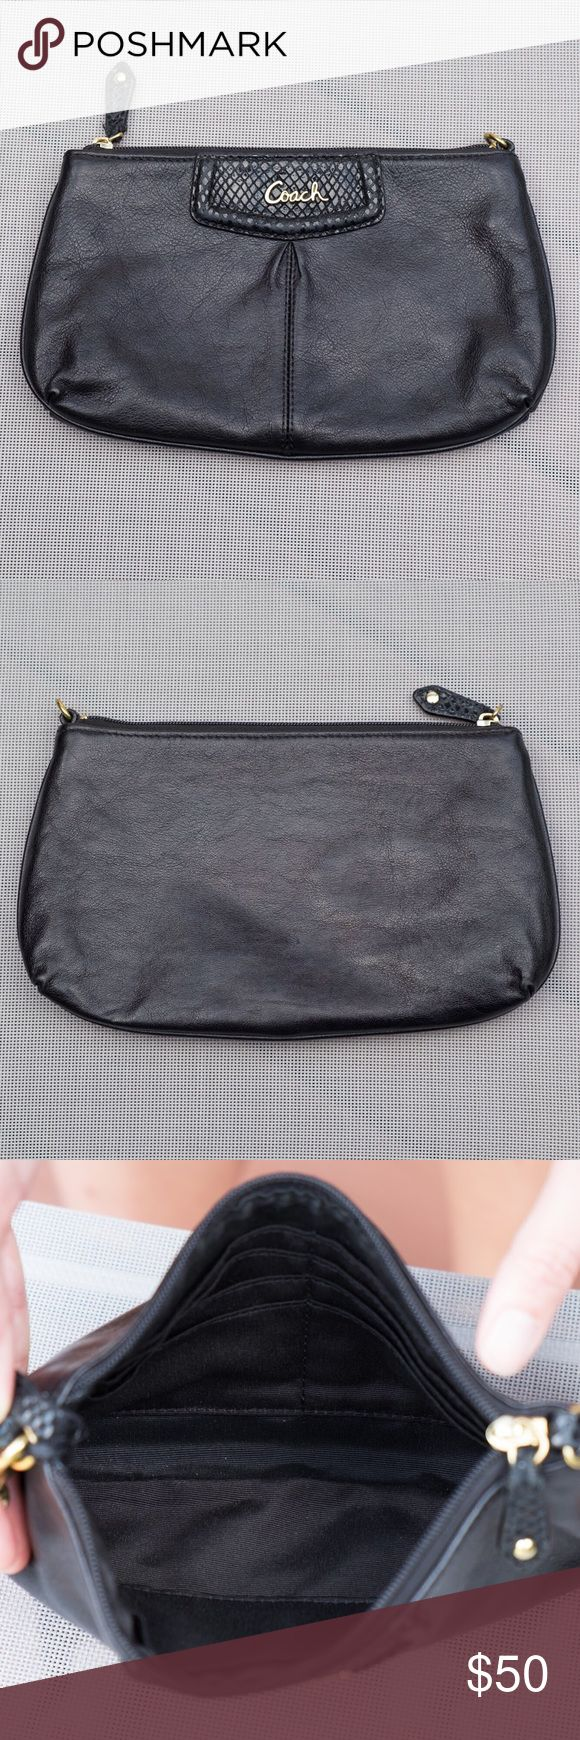 Coach Clutch Leather Coach clutch. Goes with everything! Coach Bags Clutches & Wristlets